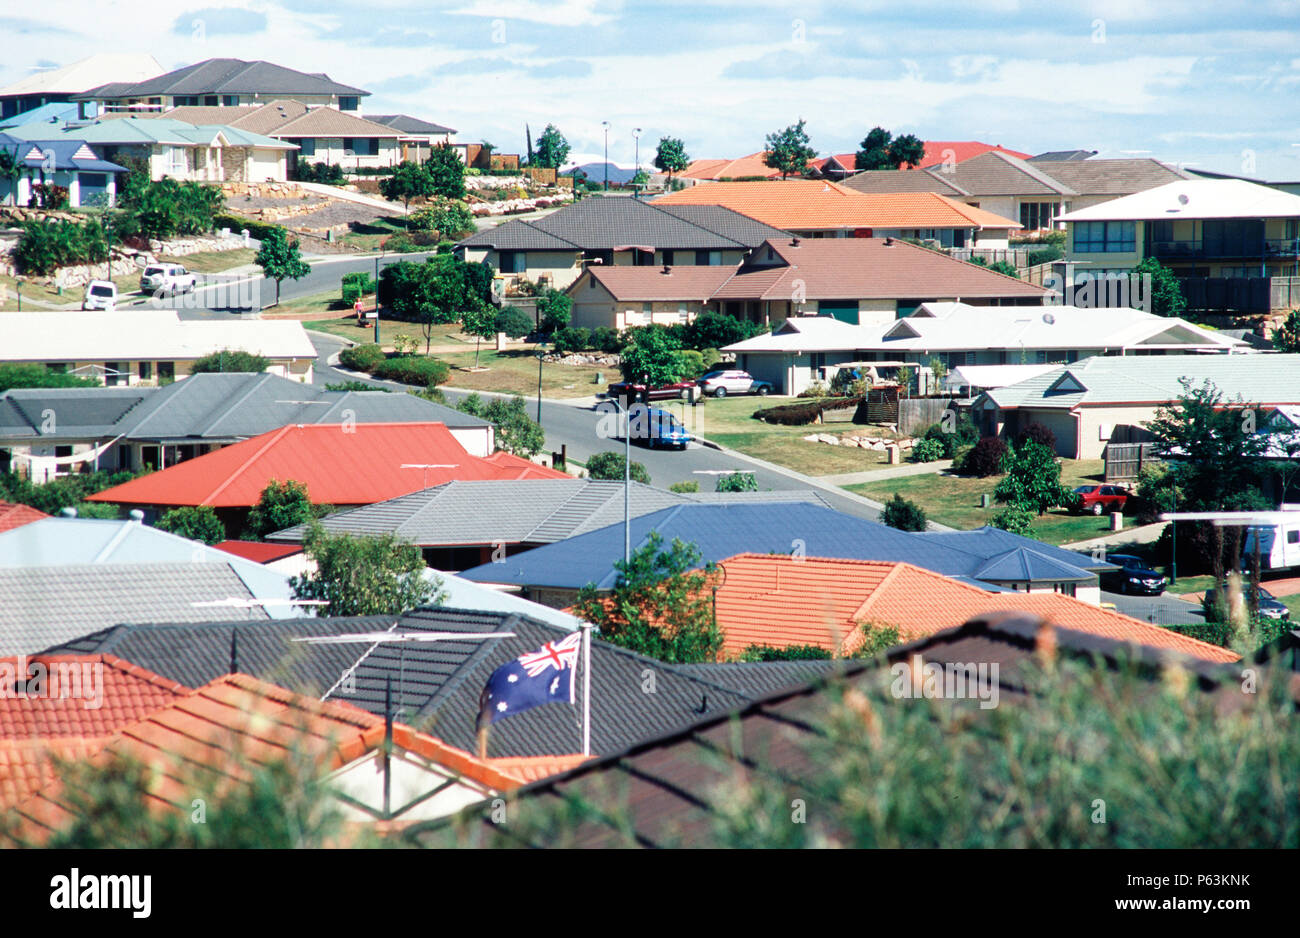 Housing area in a small town outside Brisbane, Queensland, Australia - Stock Image